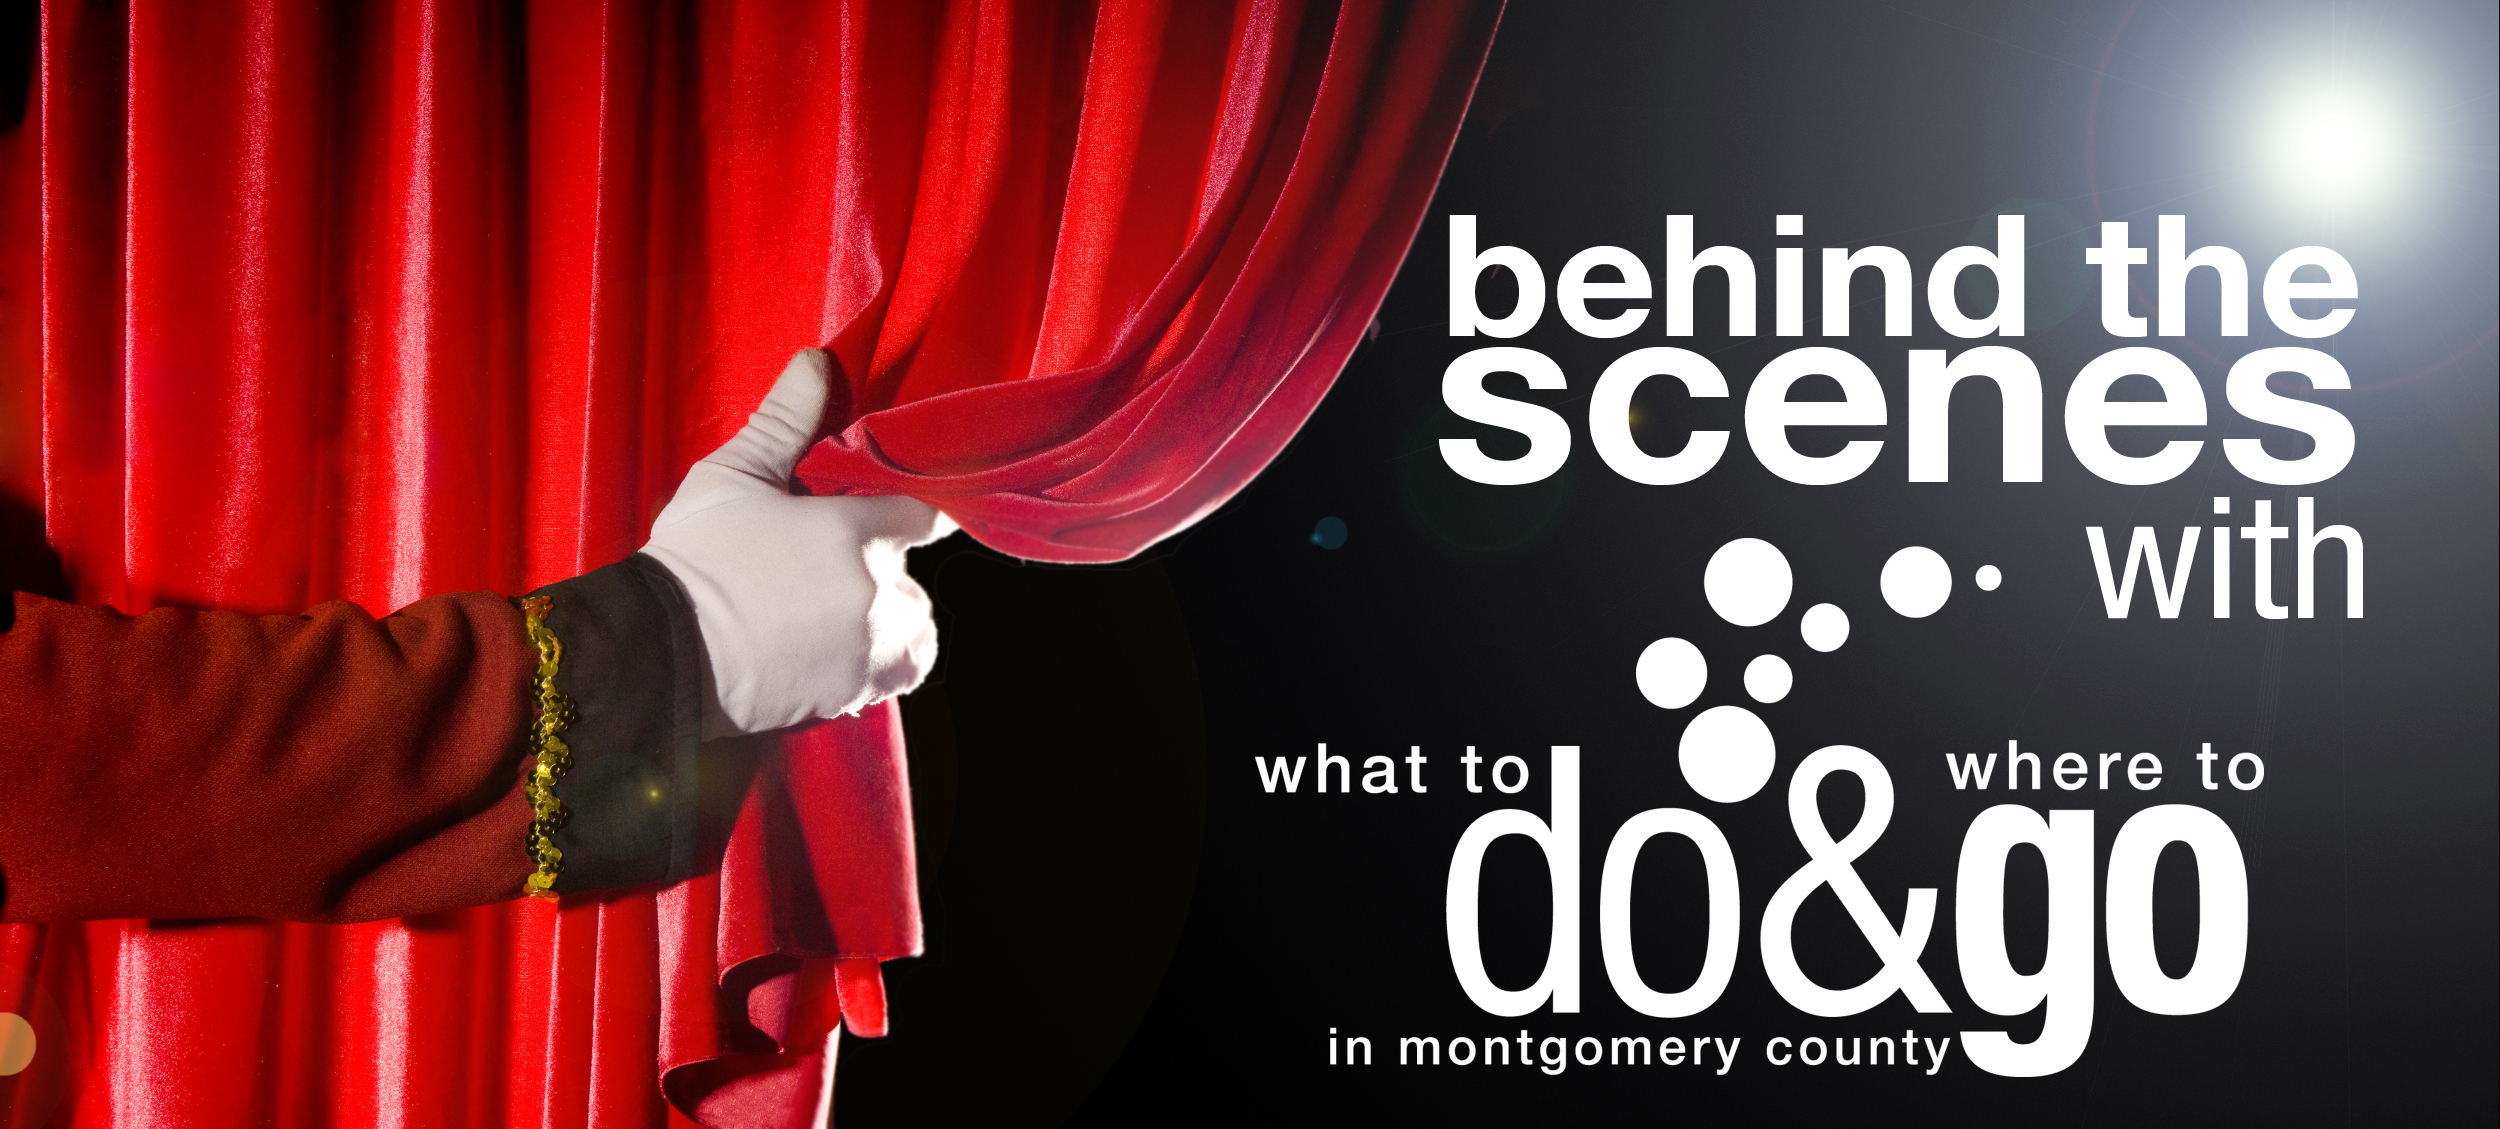 Brehind the Scenes With Do & Go Logo